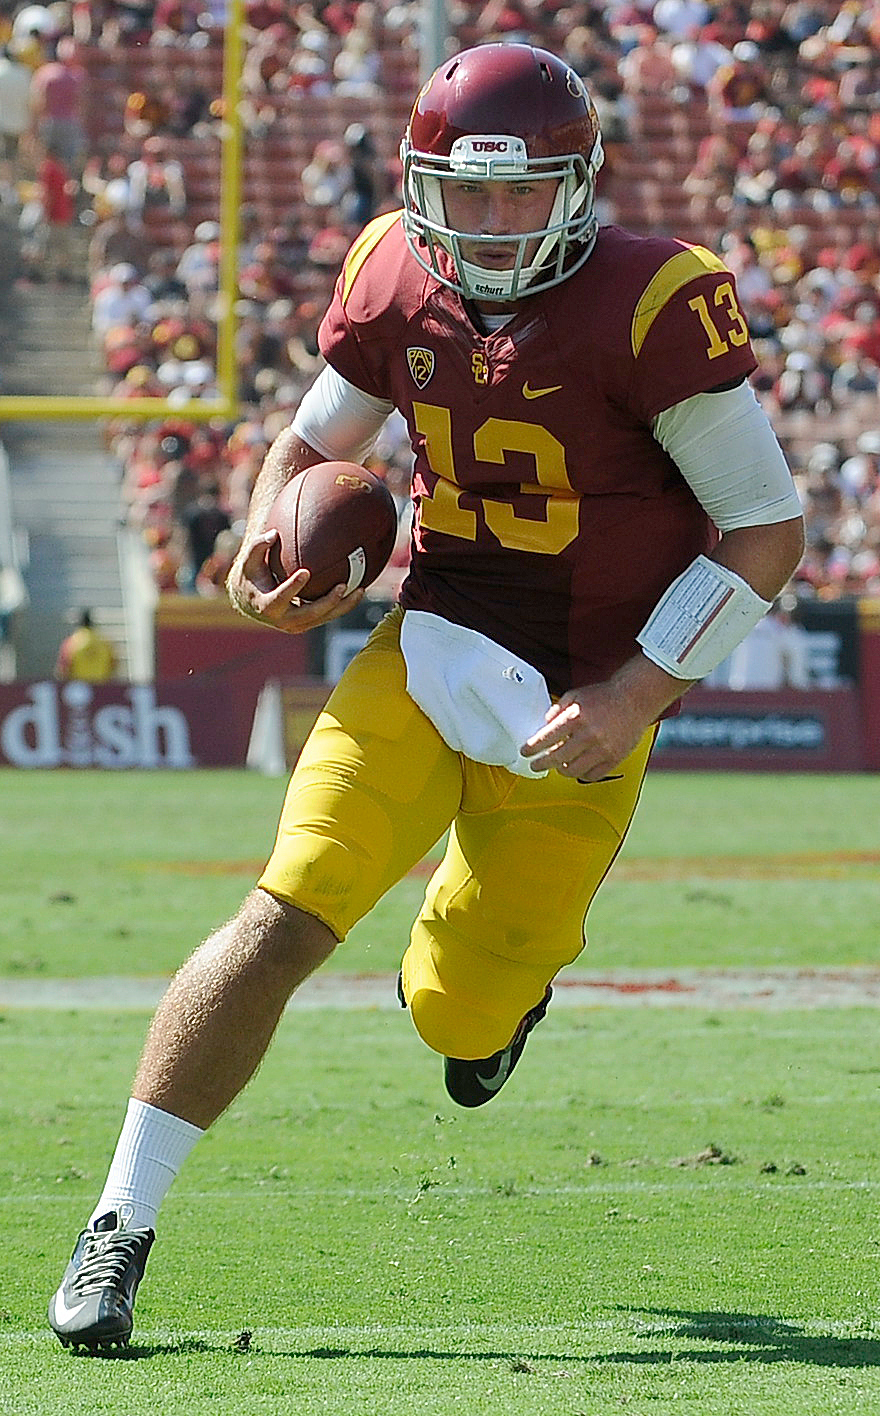 . USC QB Max Wittek replaced Cody Kessler in the 4th quarter, and ended up scoring a TD in the 4th quarter. USC defeated Boston College 35-7 in a game played at the Coliseum in Los Angeles, CA. 9/14/2013. photo by (John McCoy/Los Angeles Daily News)